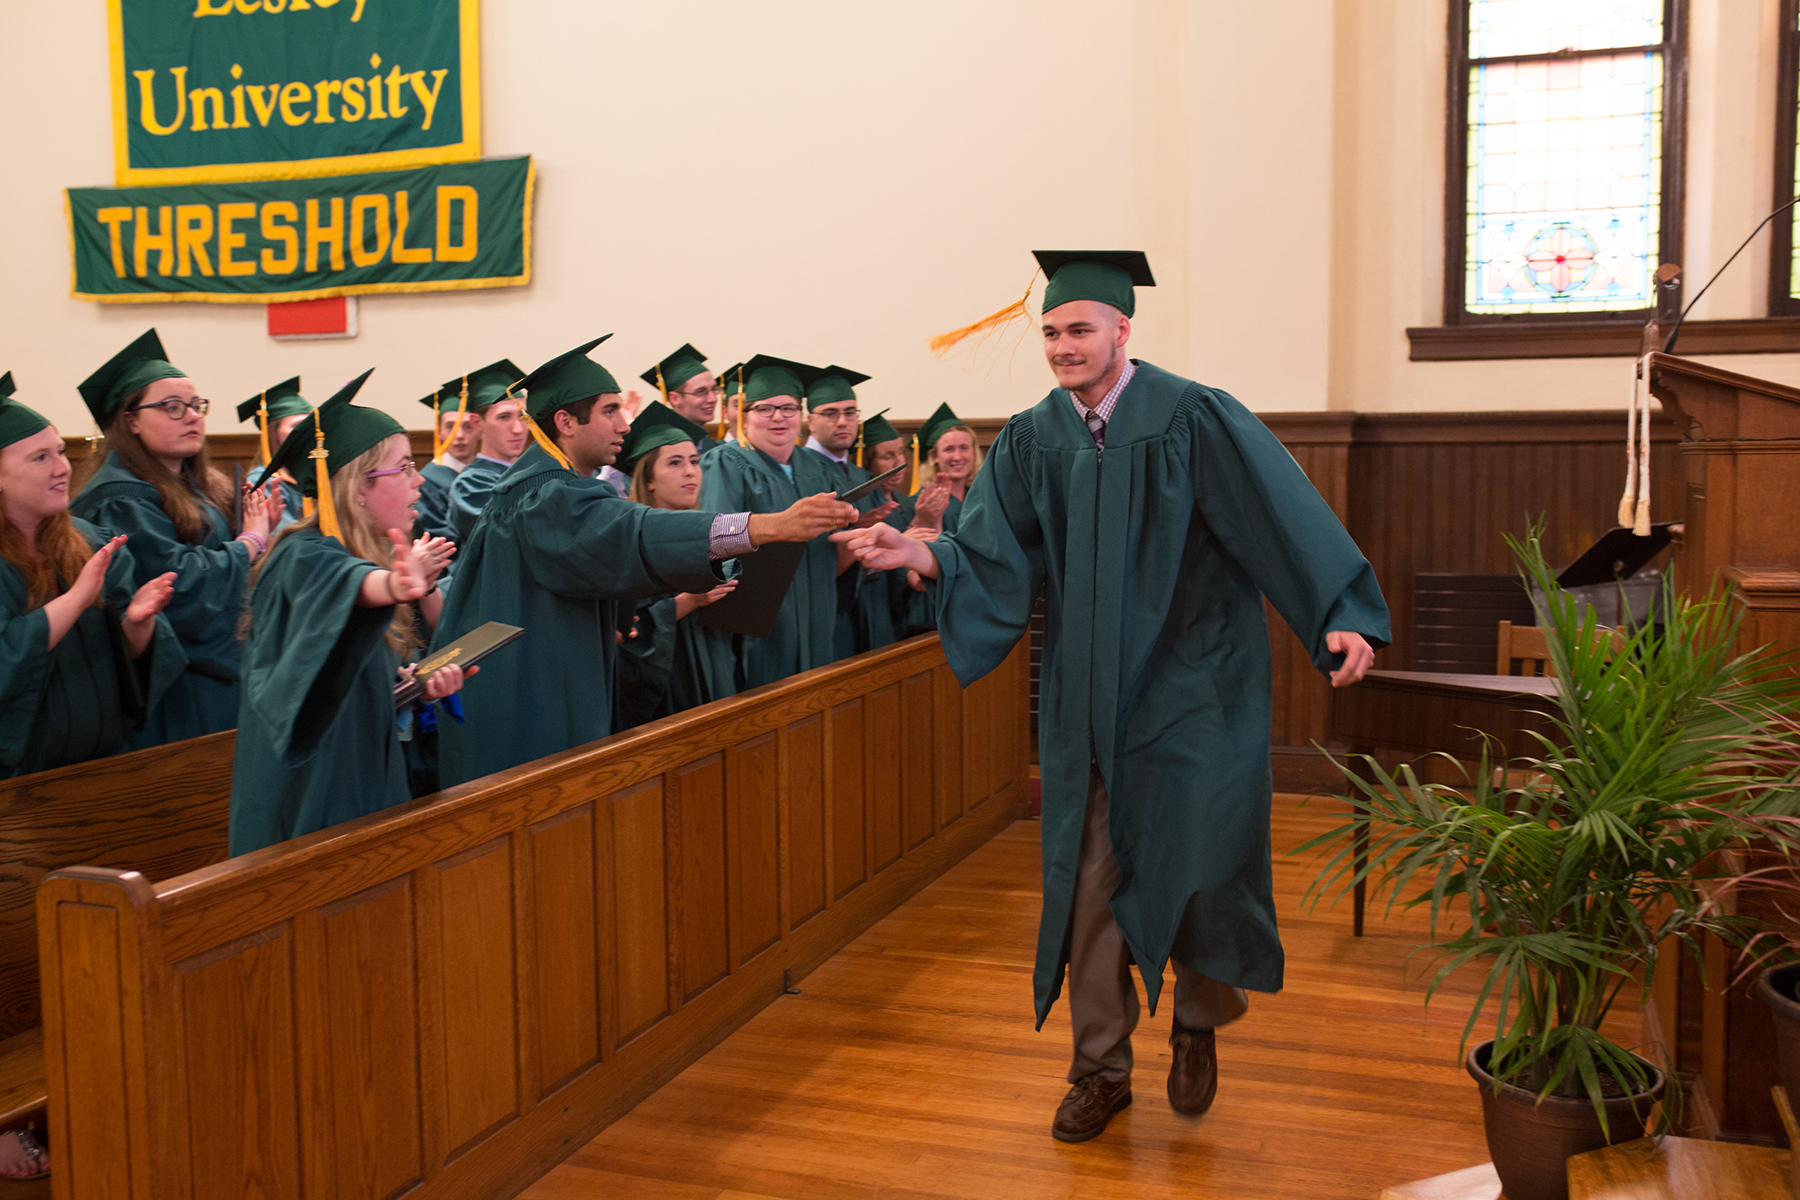 Graduate Chris Satterfield receives a high five as he approaches the stage.